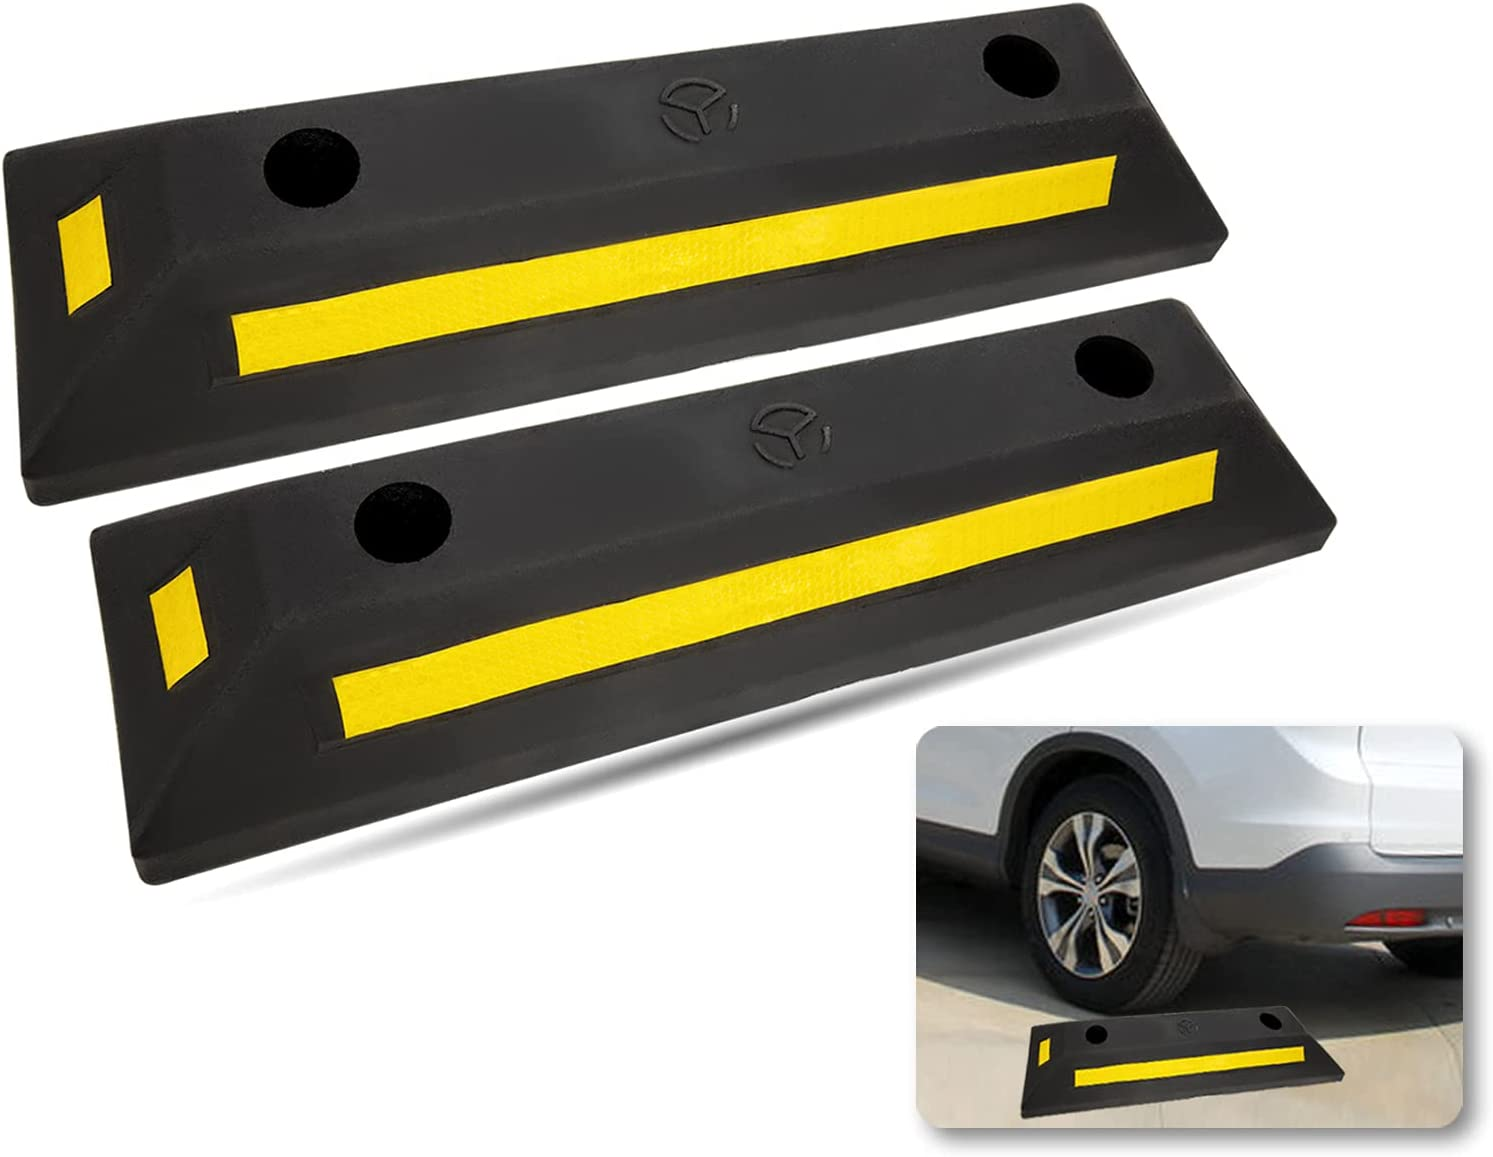 WENBIAO Industry Rubber Curb Black Heavy Pa Duty New All items free shipping Free Shipping Blocks Parking